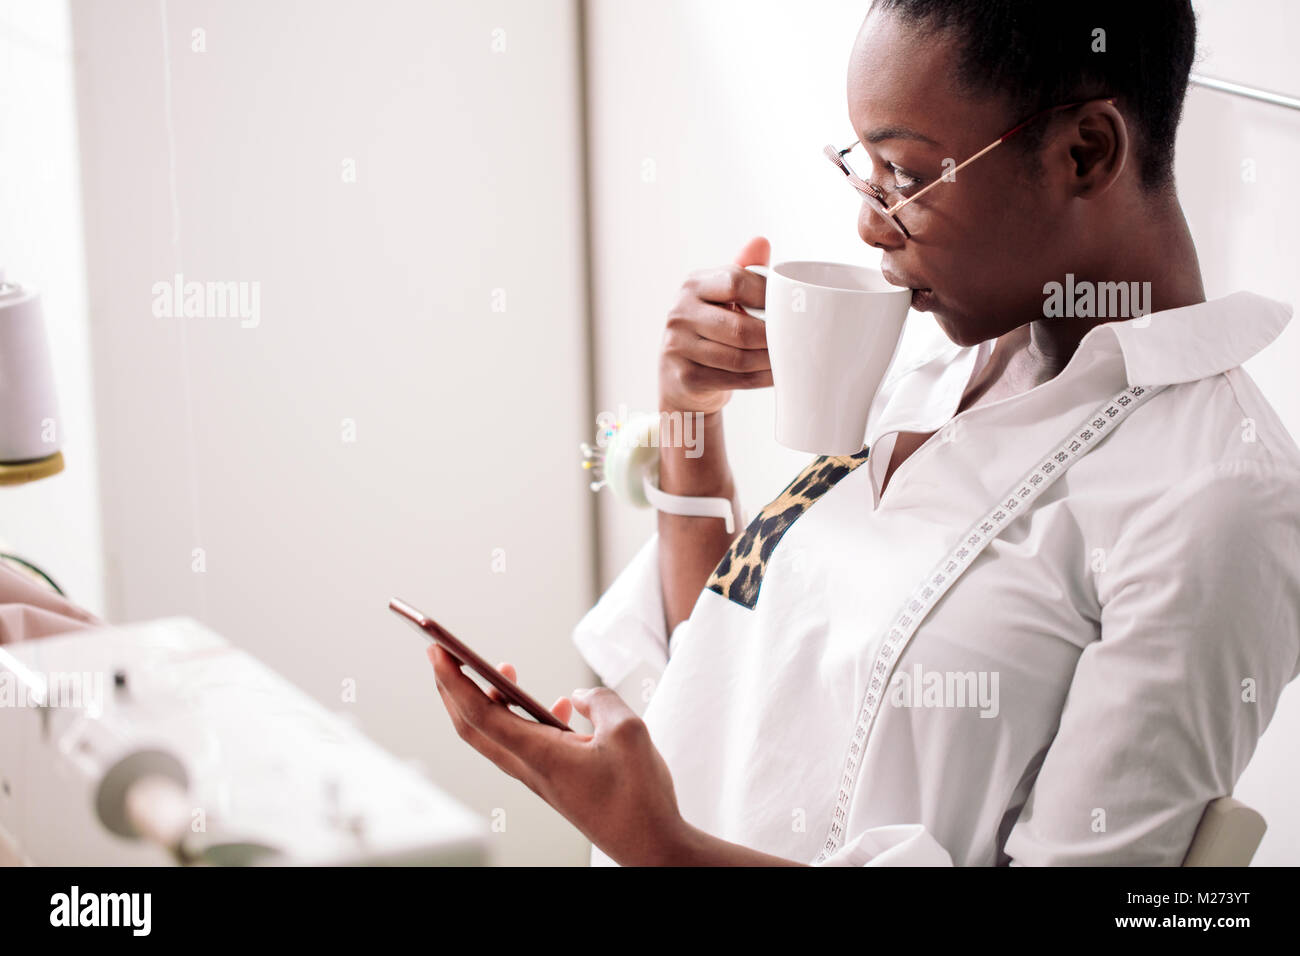 Cheerful woman seamstress in apron talking on phone and drinking coffee - Stock Image